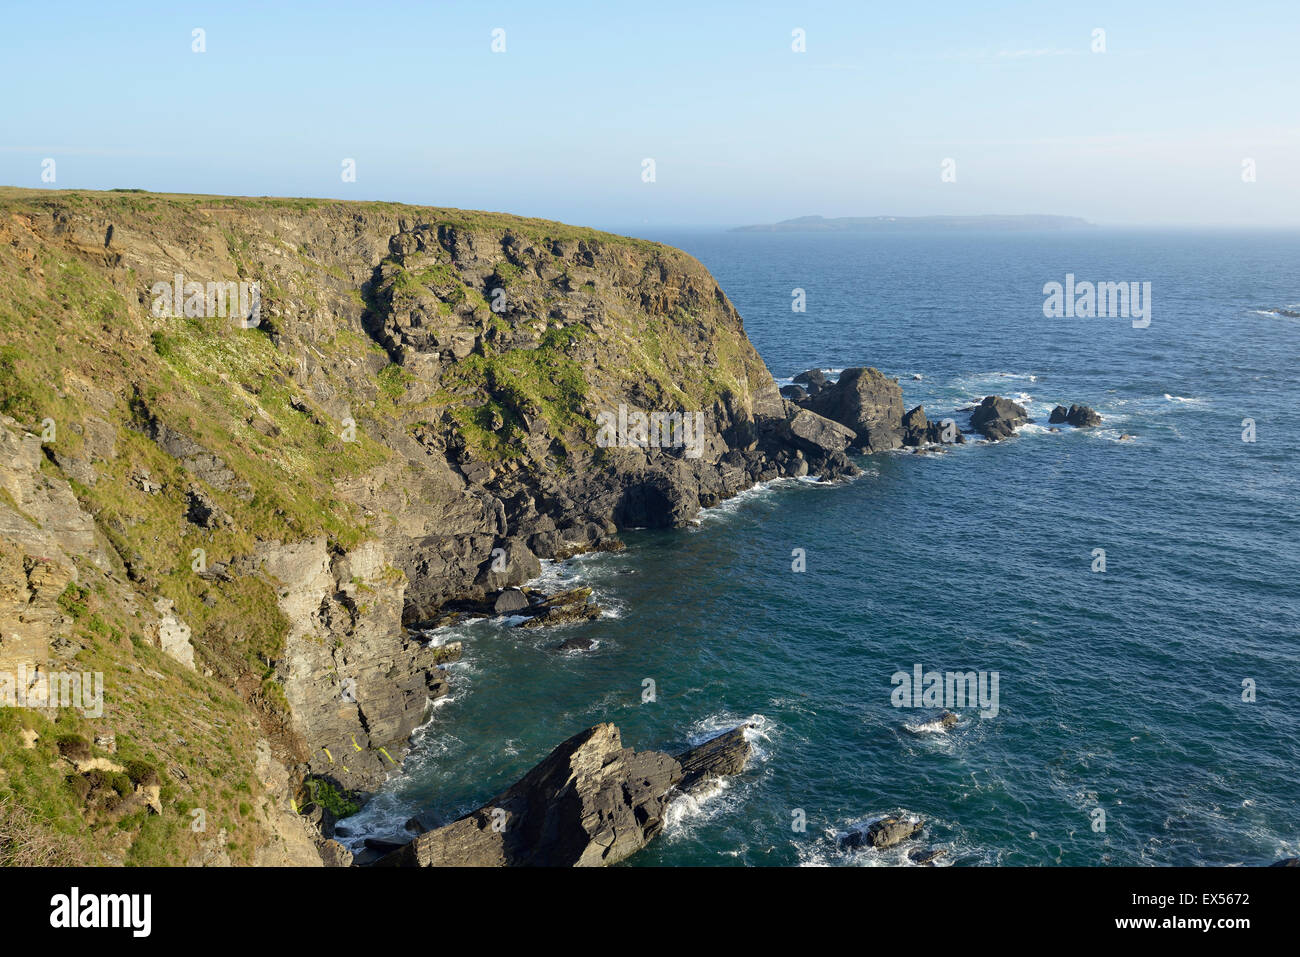 Pitting Gales Point, near Marloes, Pembrokeshire, Wales - Stock Image